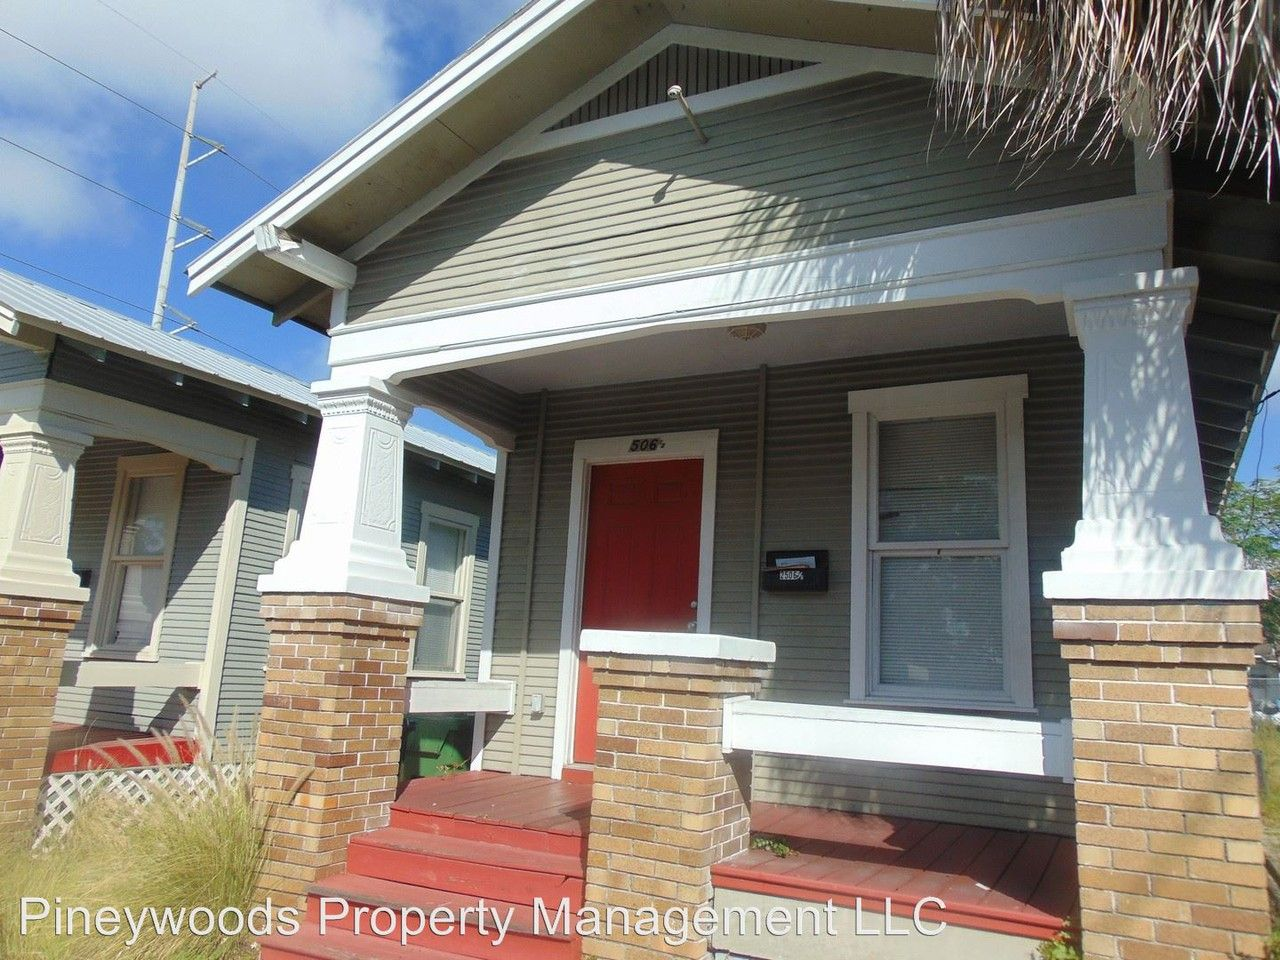 Mabry Auto Group >> 446 1/2 W Columbus Dr #2506, Tampa, FL 33602 2 Bedroom House for Rent for $1,075/month - Zumper